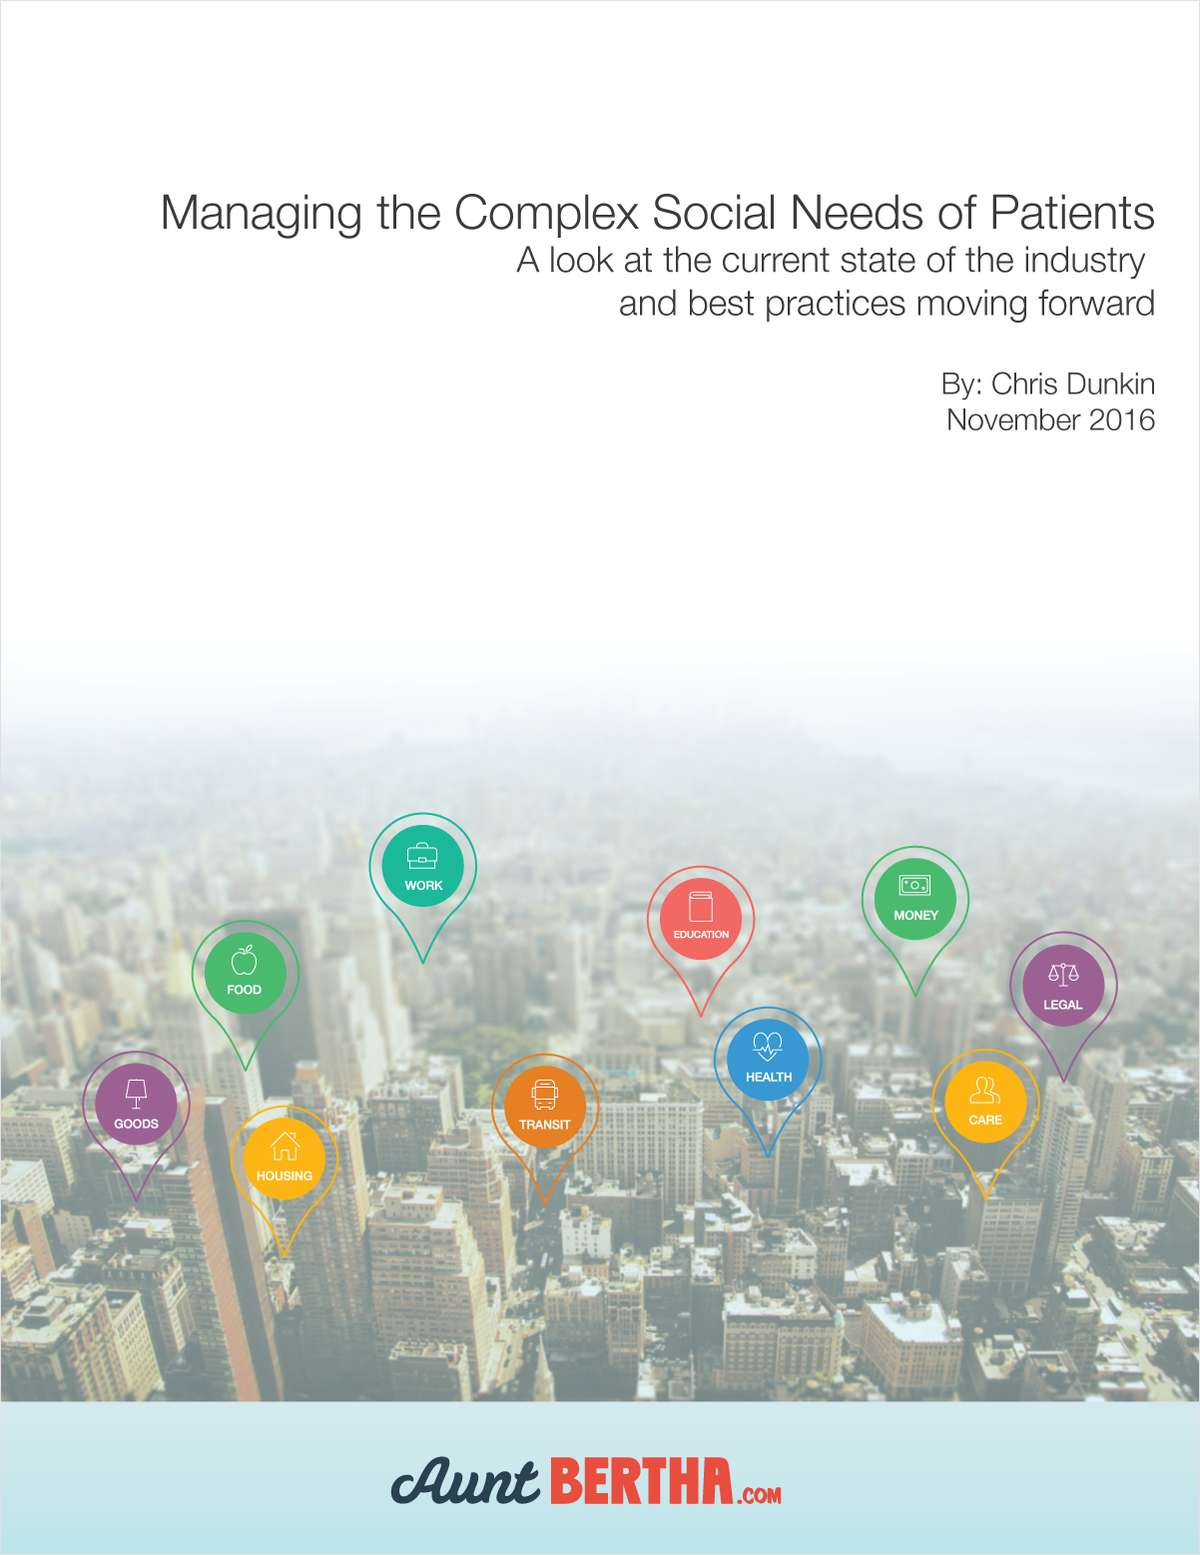 Why do hospitals struggle to manage social needs of patients?